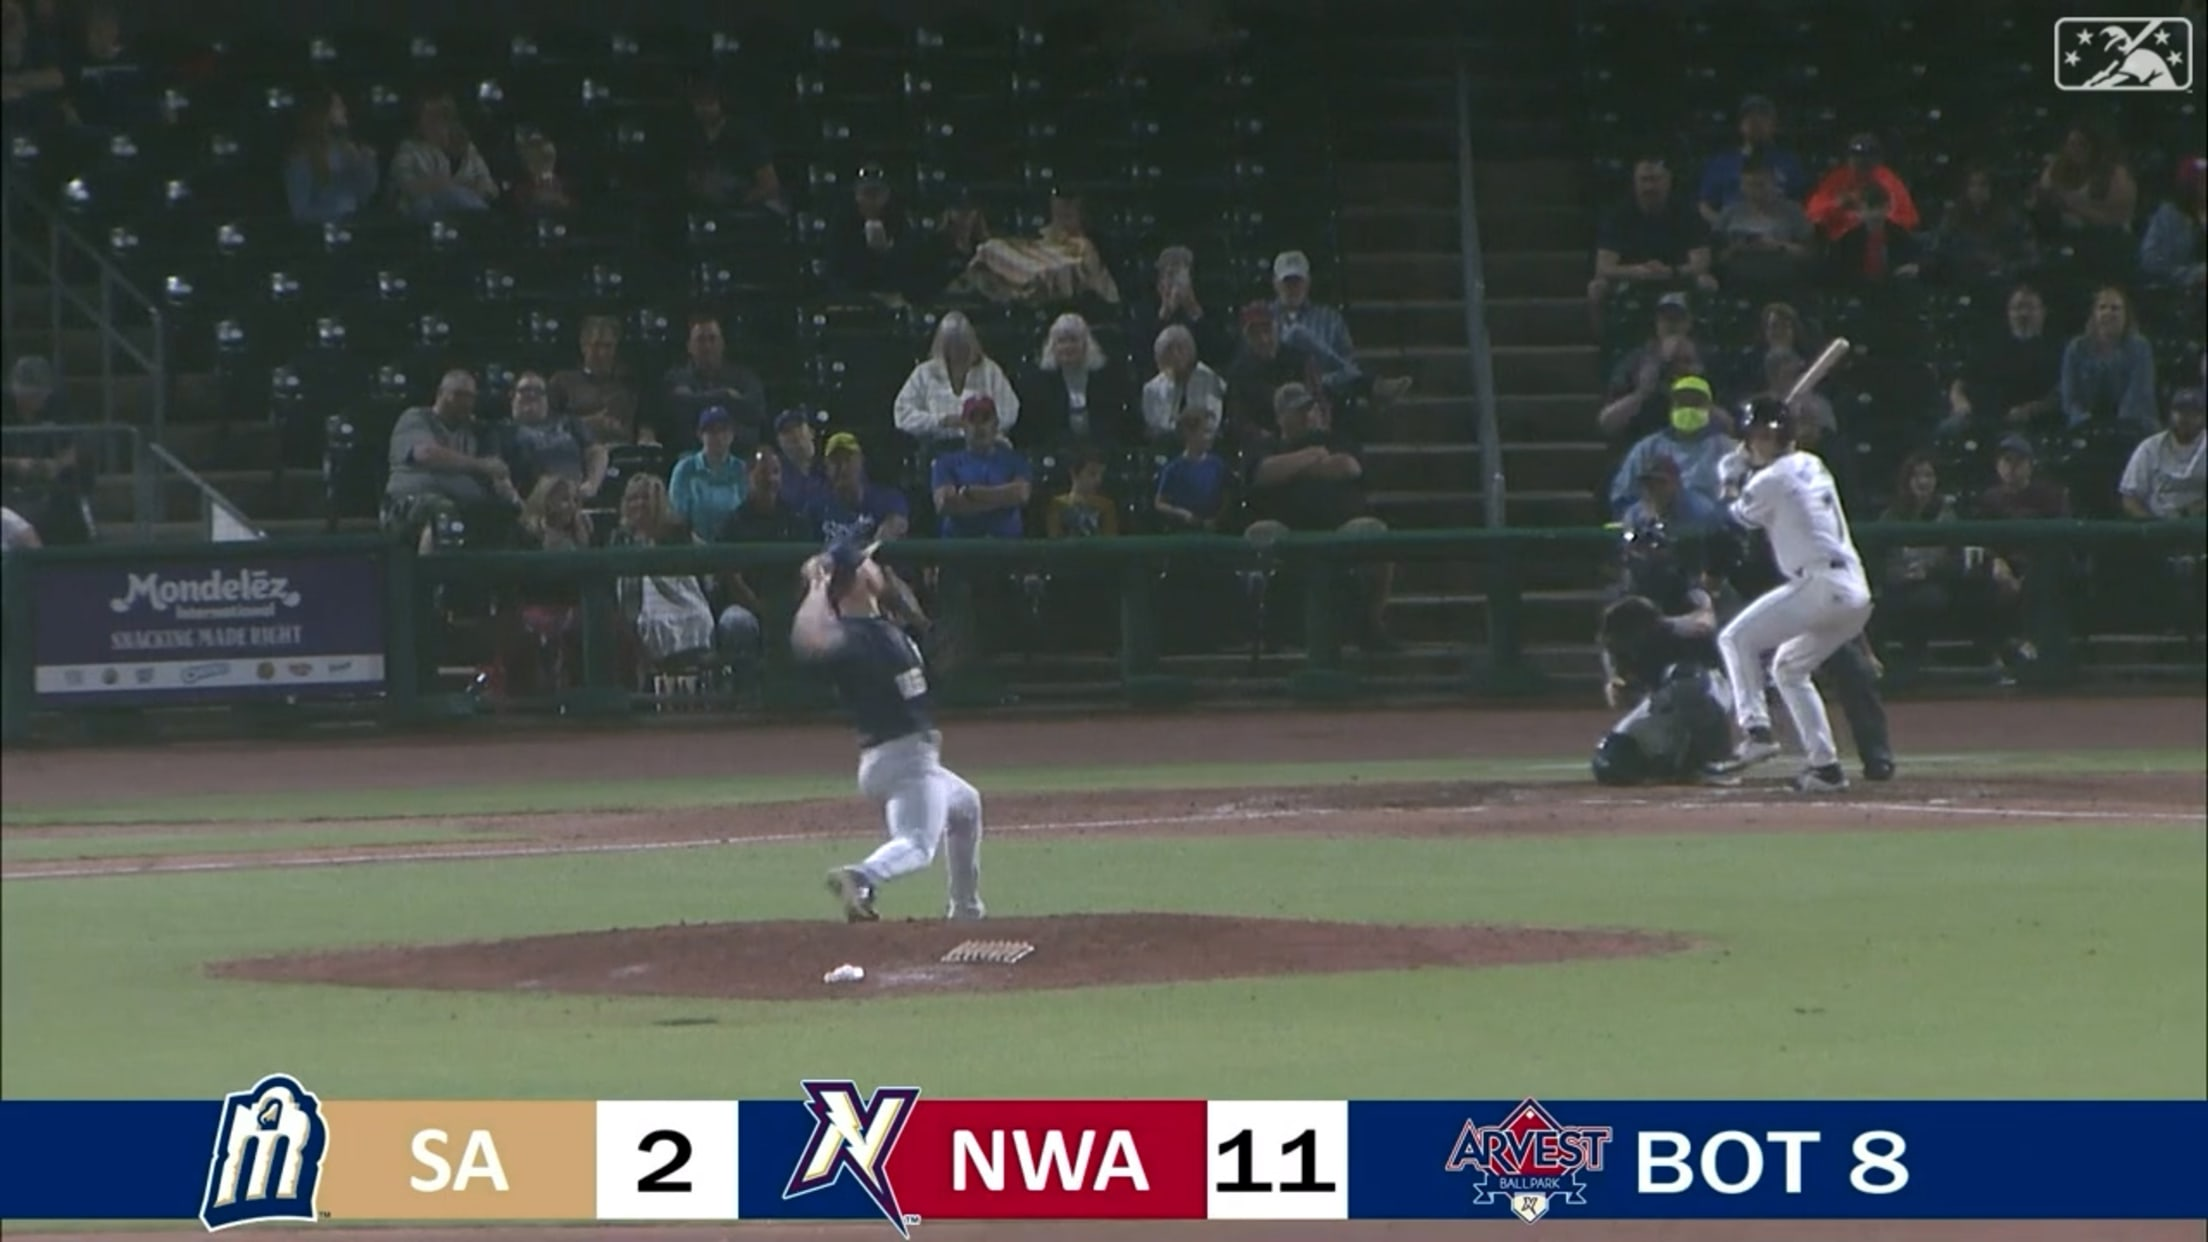 Witt Jr.'s 3-HR game in Double-A